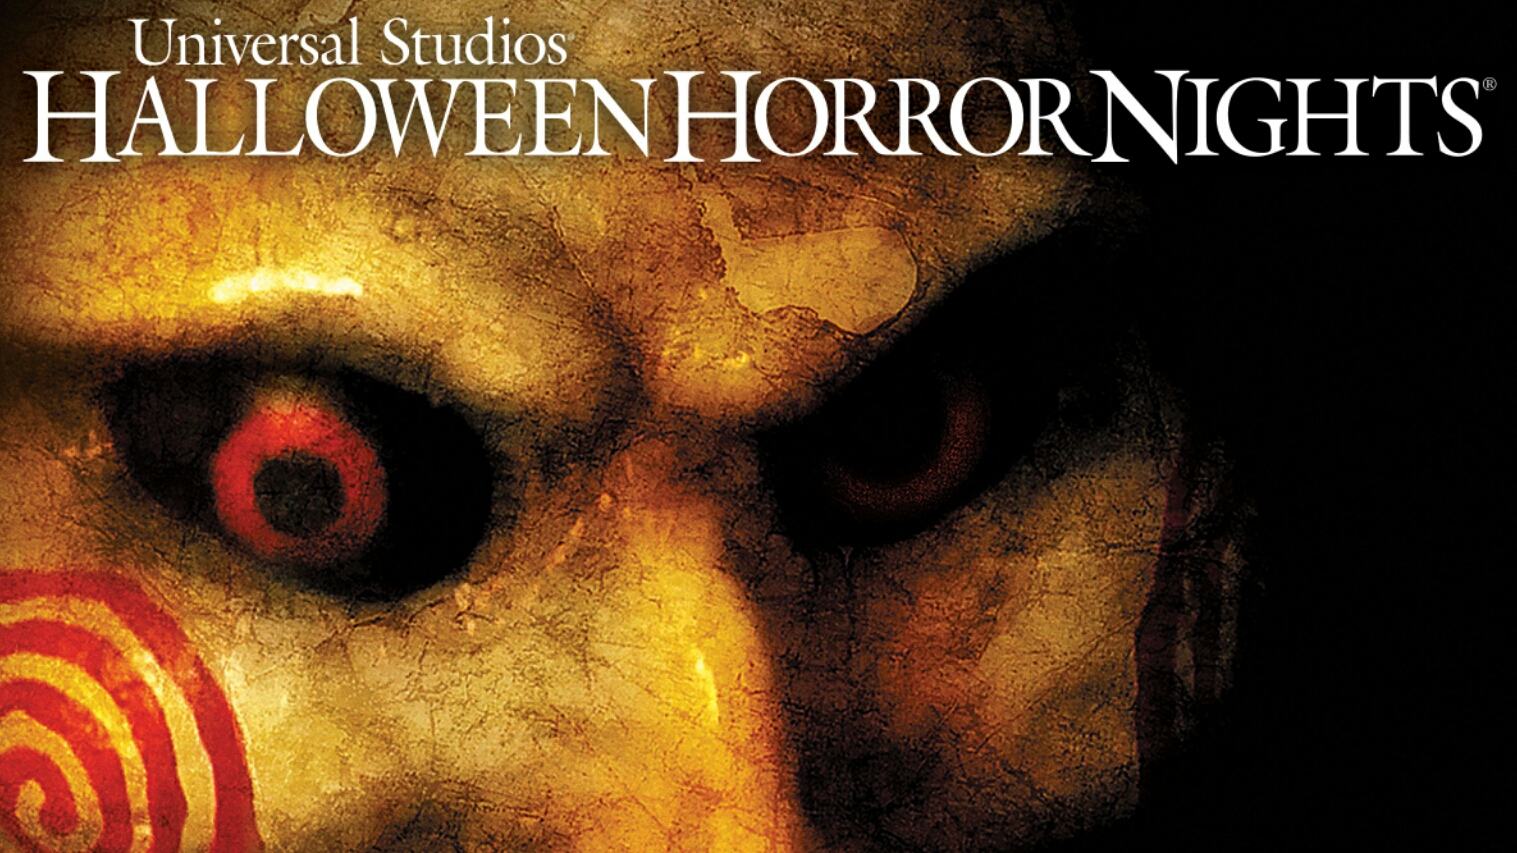 Jogos Mortais retorna ao Halloween Horror Nights do Universal Studios